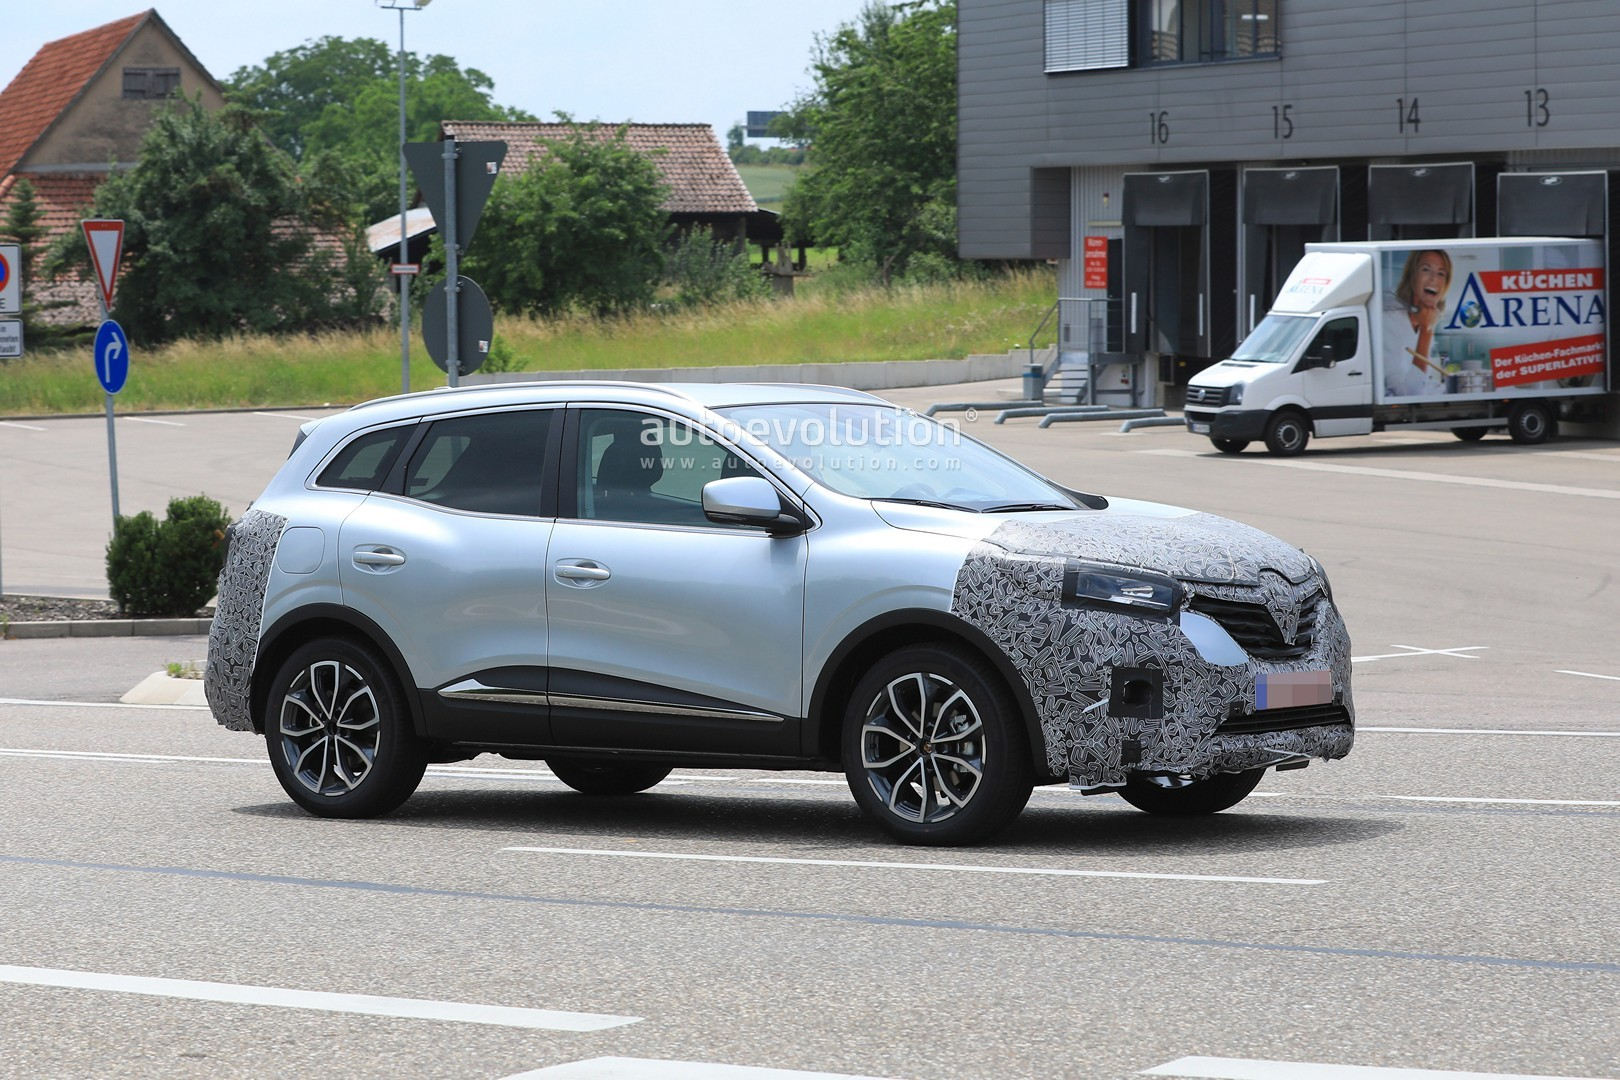 2018 - [Renault] Kadjar restylé  - Page 9 2019-renault-kadjar-facelift-spied-with-new-front-end-will-debut-in-september_7